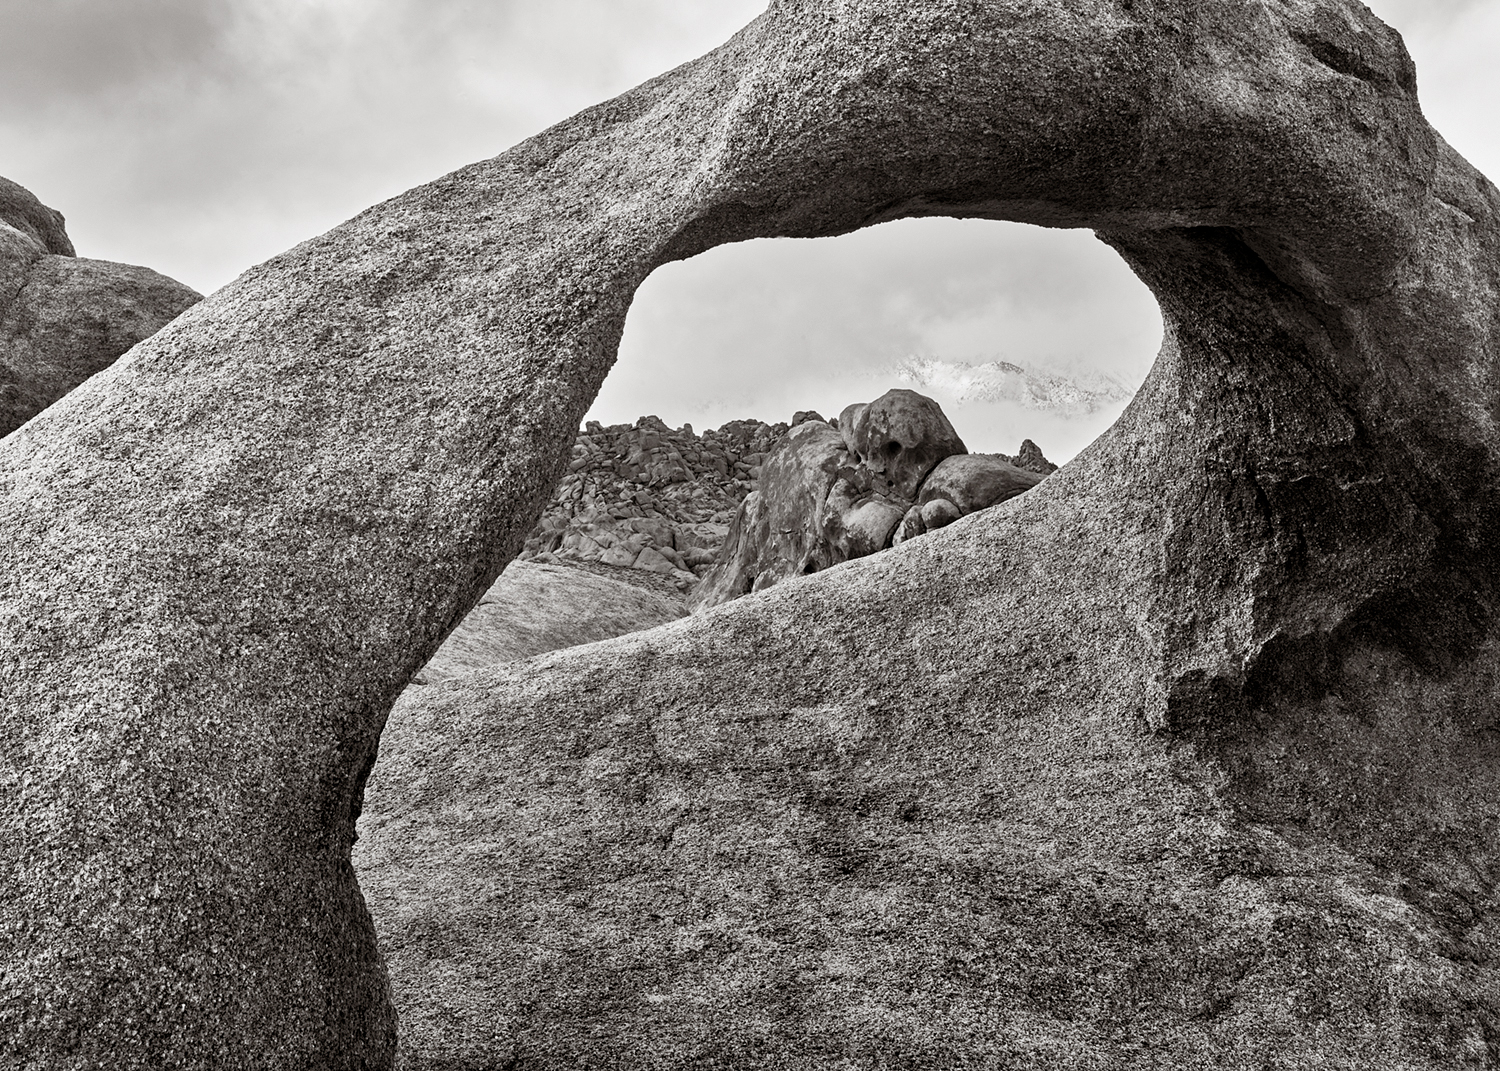 Mobius Arch in Black and White, Alabama Hills, Lone Pine, California